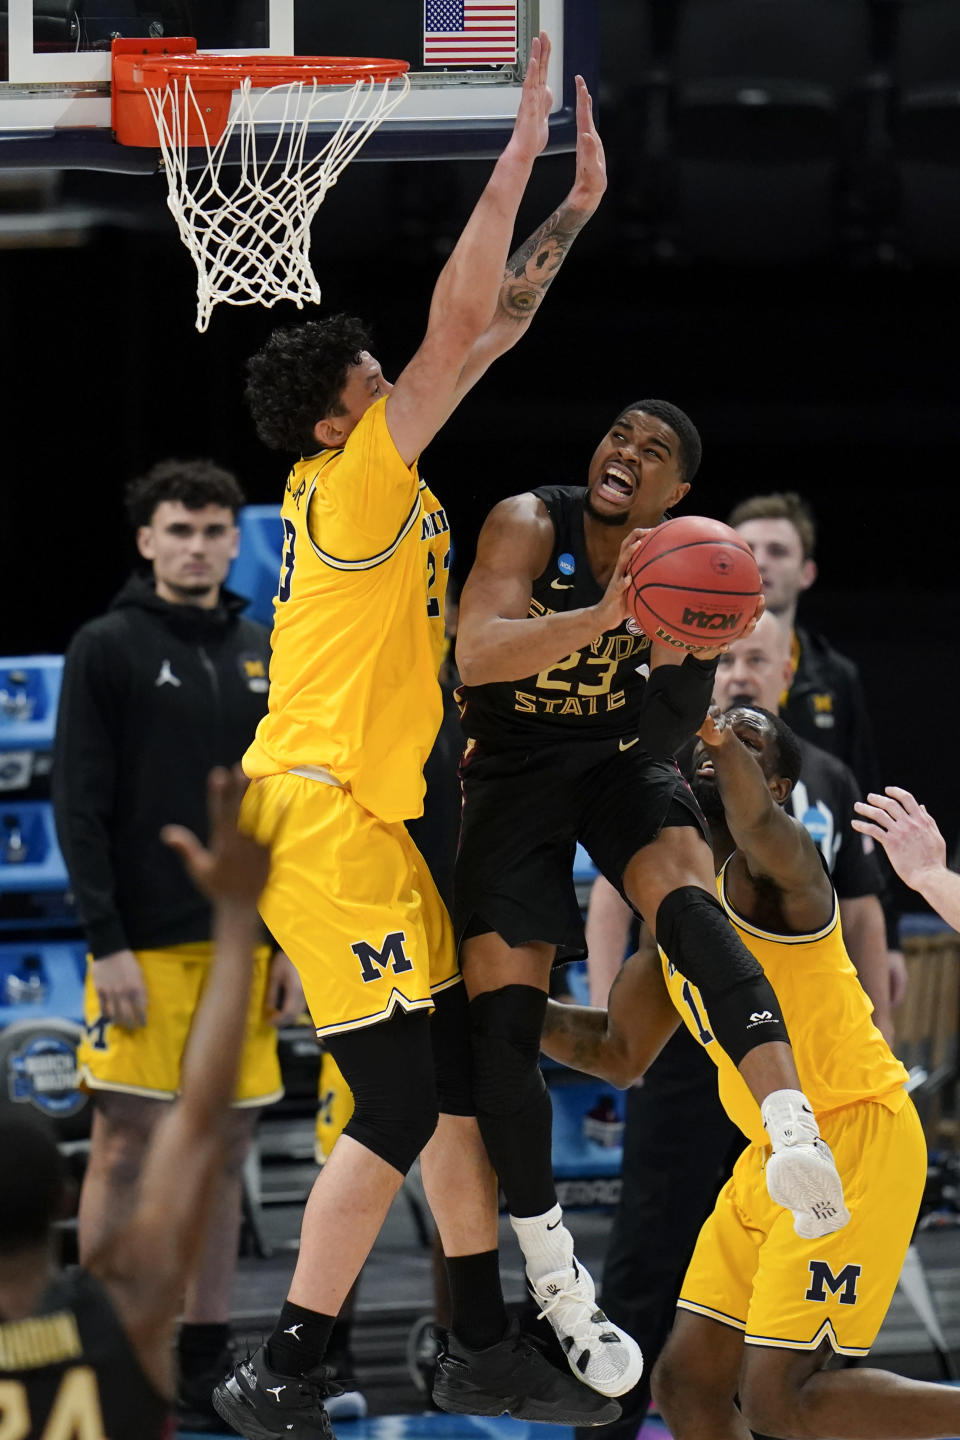 Florida State guard M.J. Walker, right, looks to shoot over Michigan forward Brandon Johns Jr., left, during the first half of a Sweet 16 game in the NCAA men's college basketball tournament at Bankers Life Fieldhouse, Sunday, March 28, 2021, in Indianapolis. (AP Photo/Jeff Roberson)